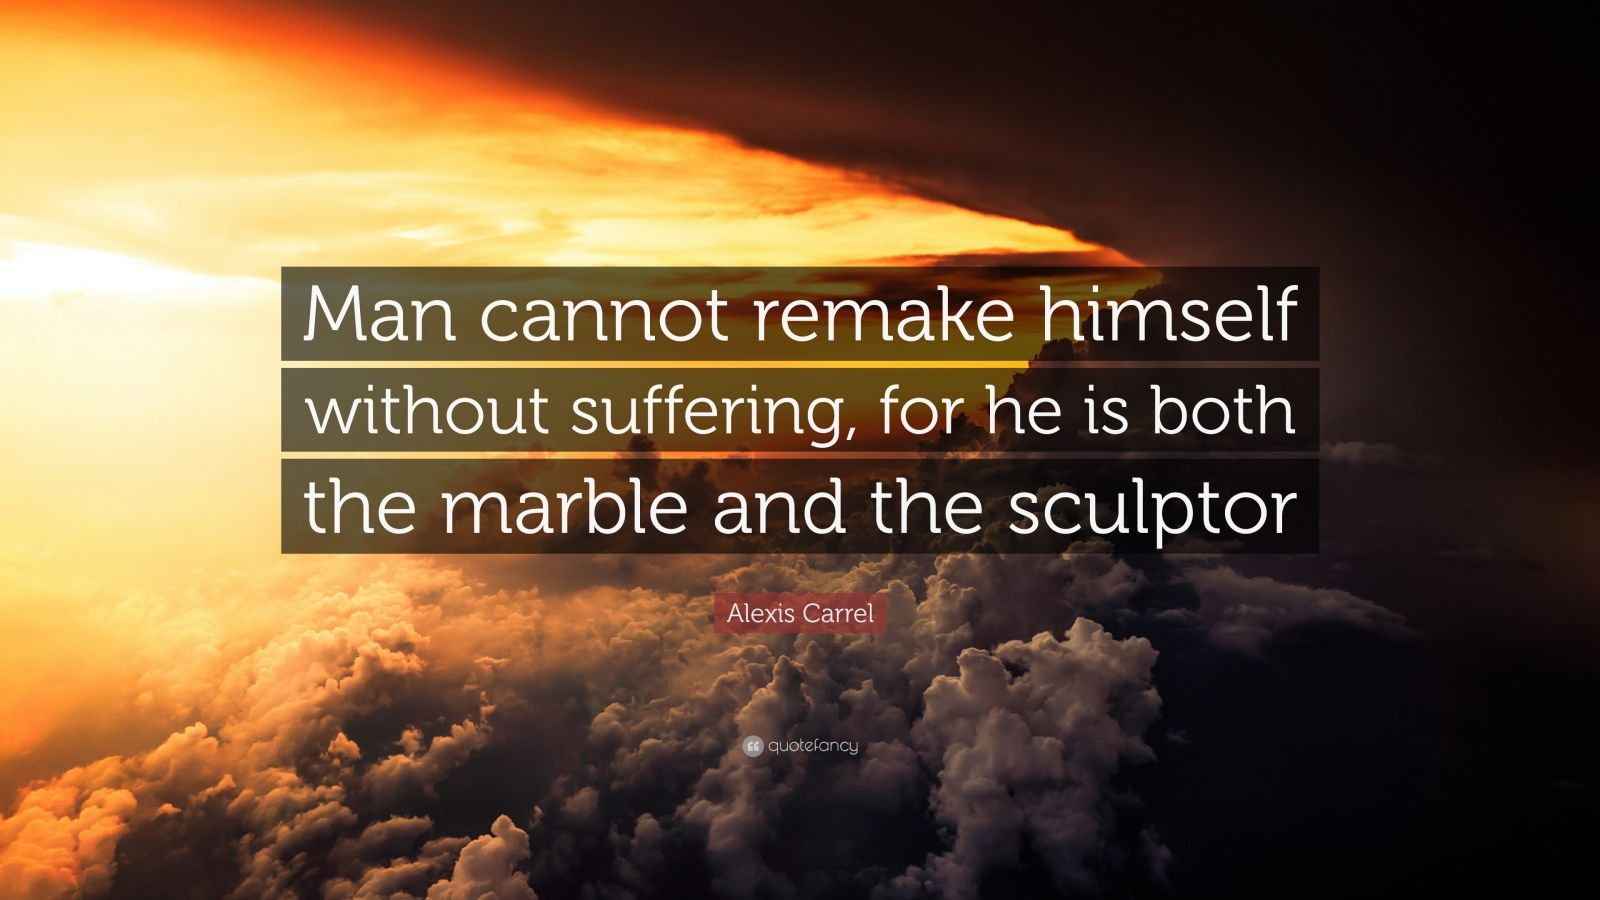 alexis carrel quote �man cannot remake himself without